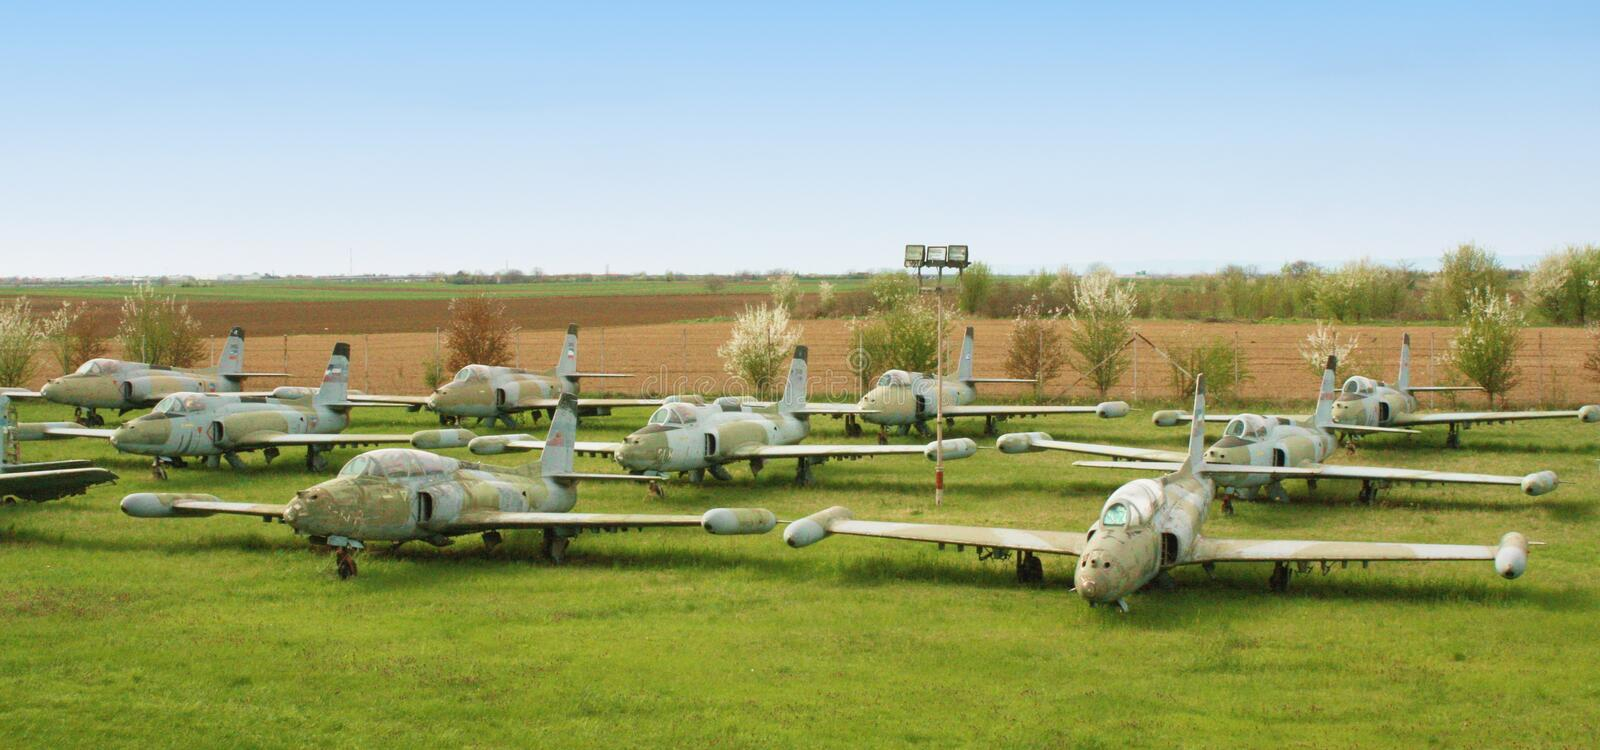 Cemetery of old military aircraft stock photography